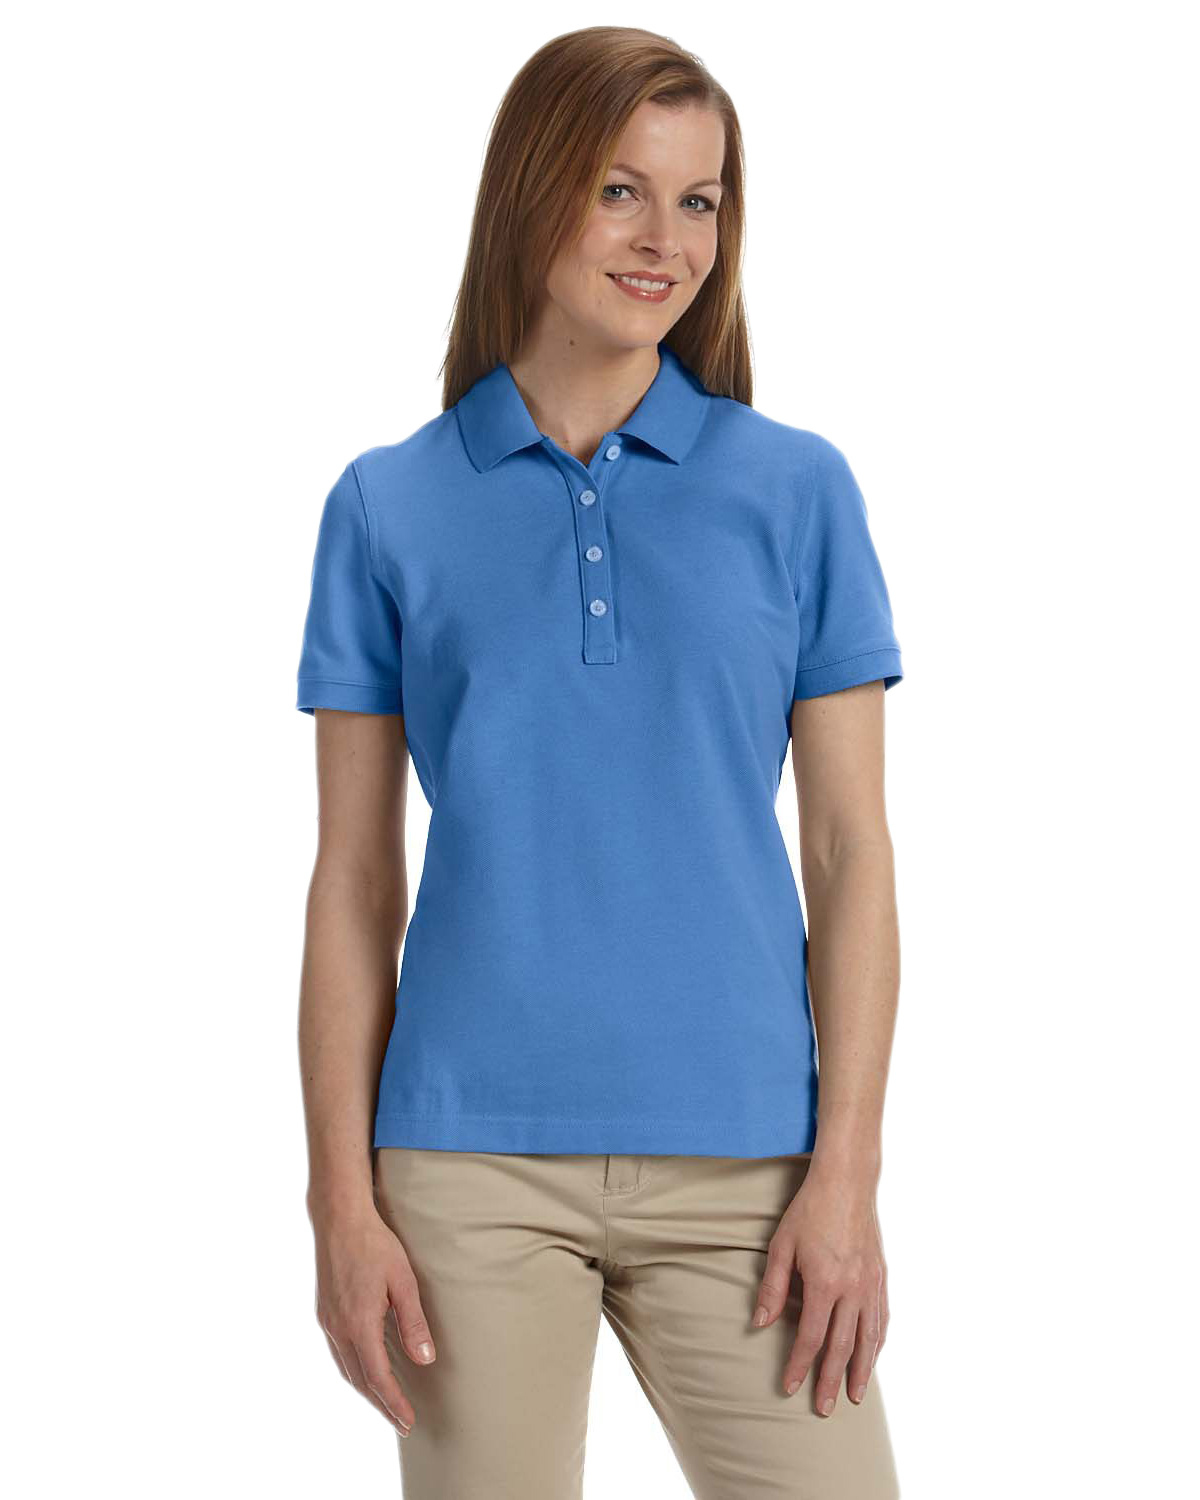 Ashworth 1146C Women's Combed Cotton Pique Polo at GotApparel